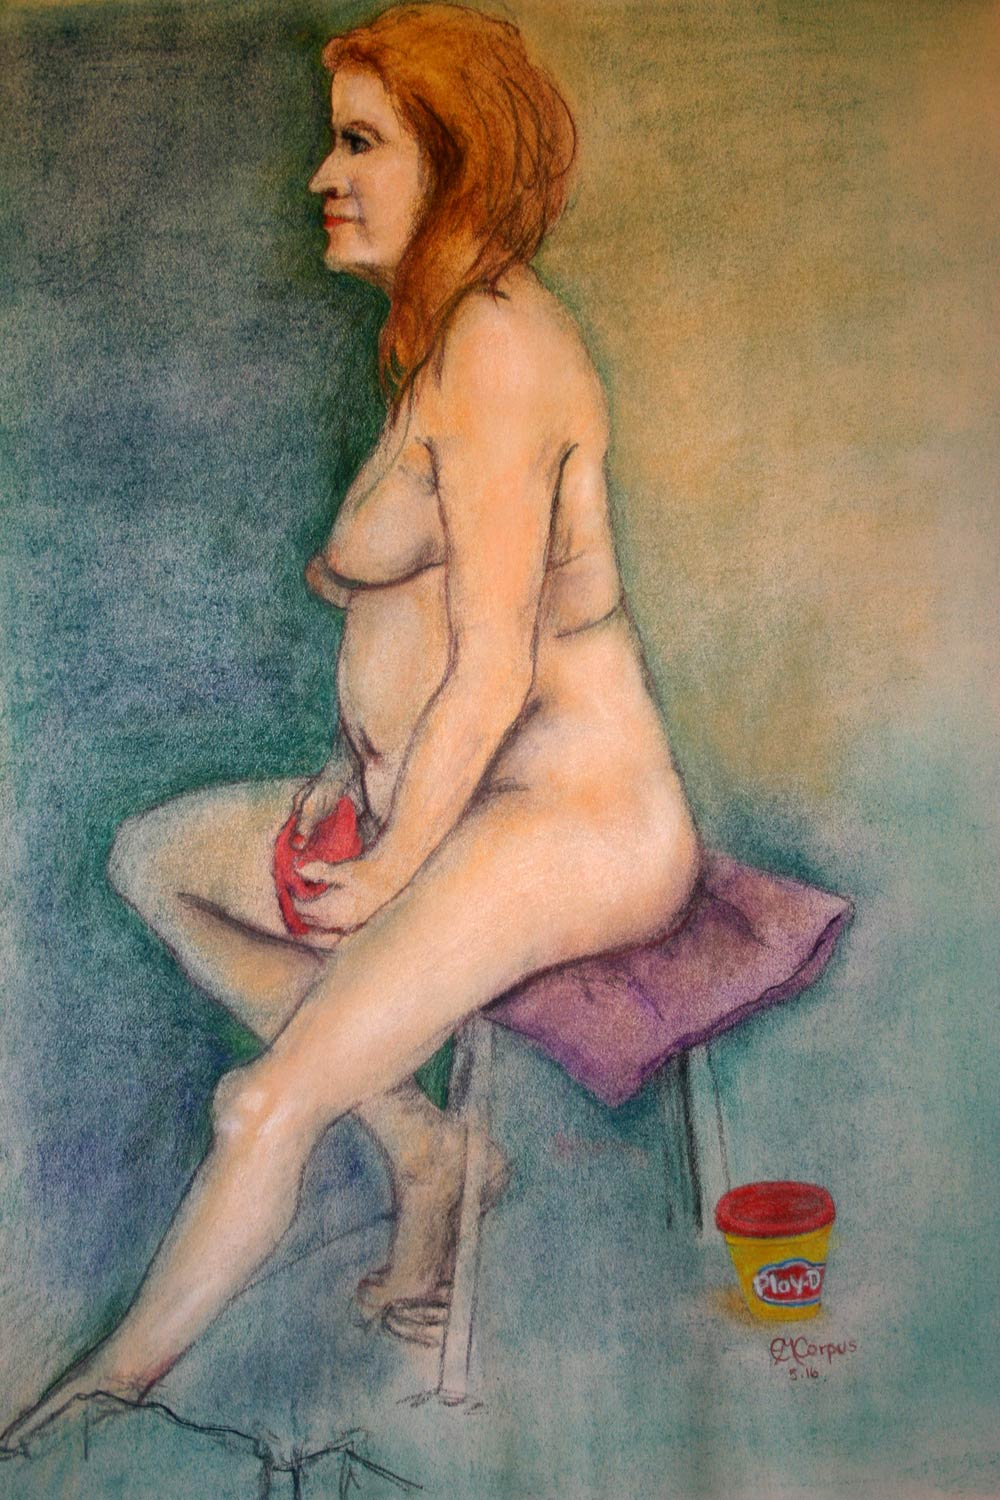 Mature Model Molding Play-Dough While Posing Nude